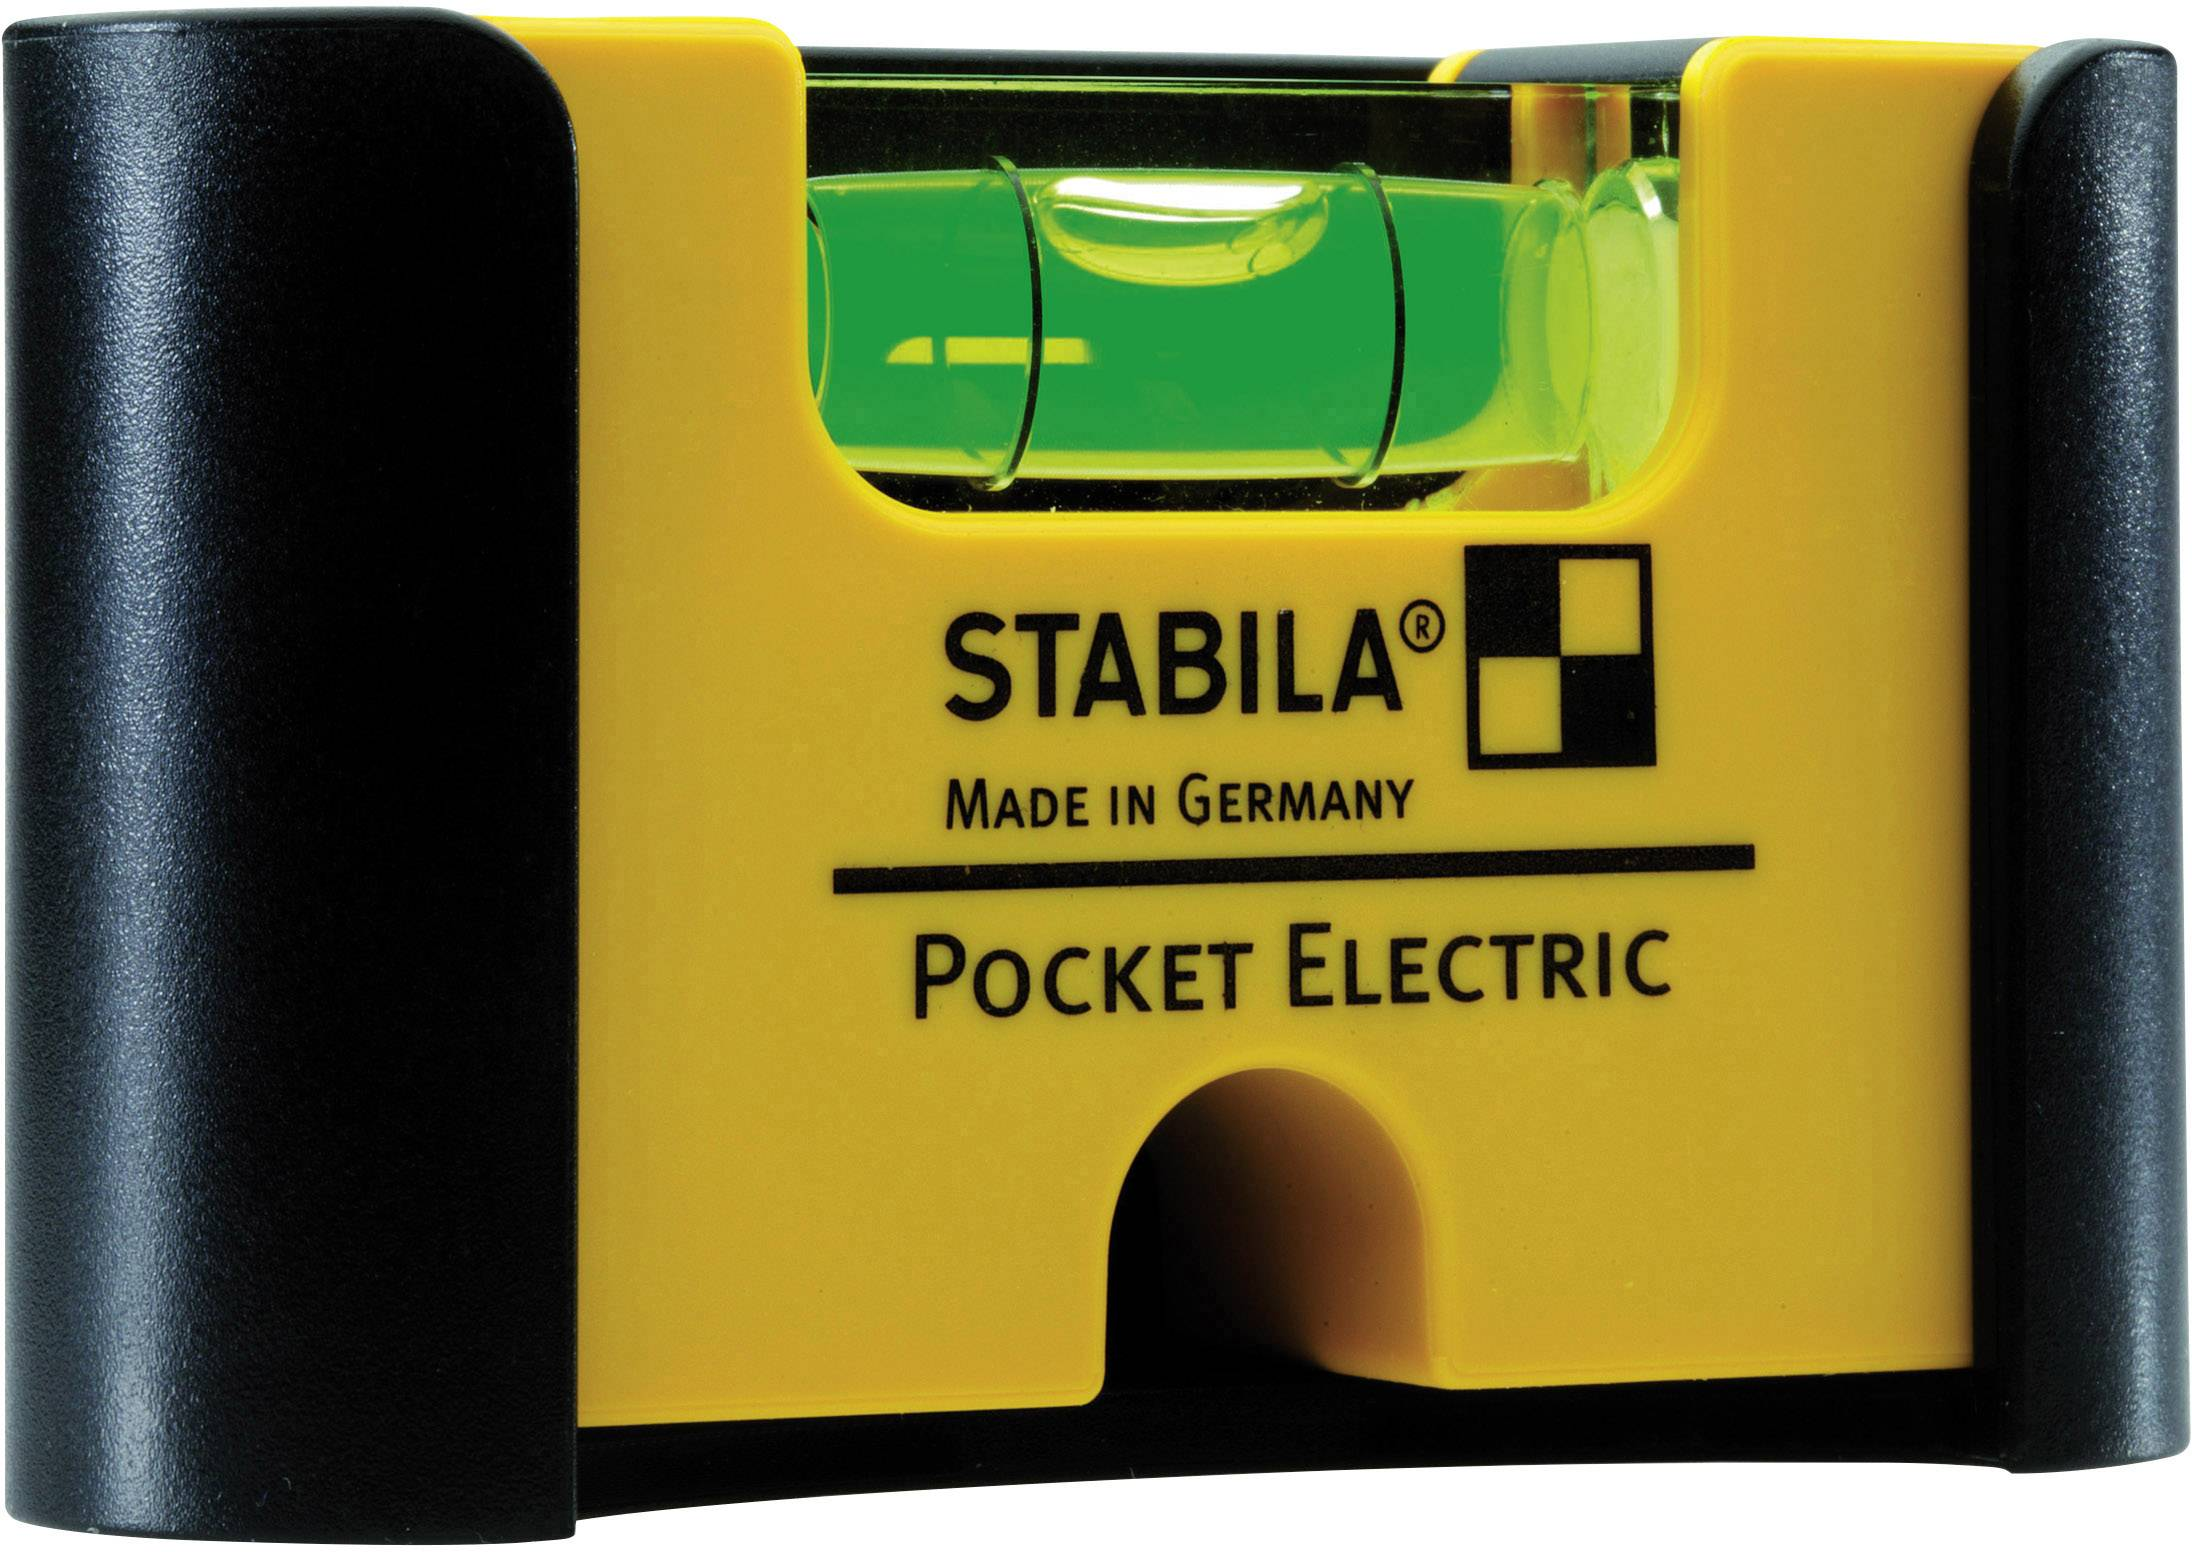 Mini vodováha Stabila Pocket Electric 18115, 7 cm